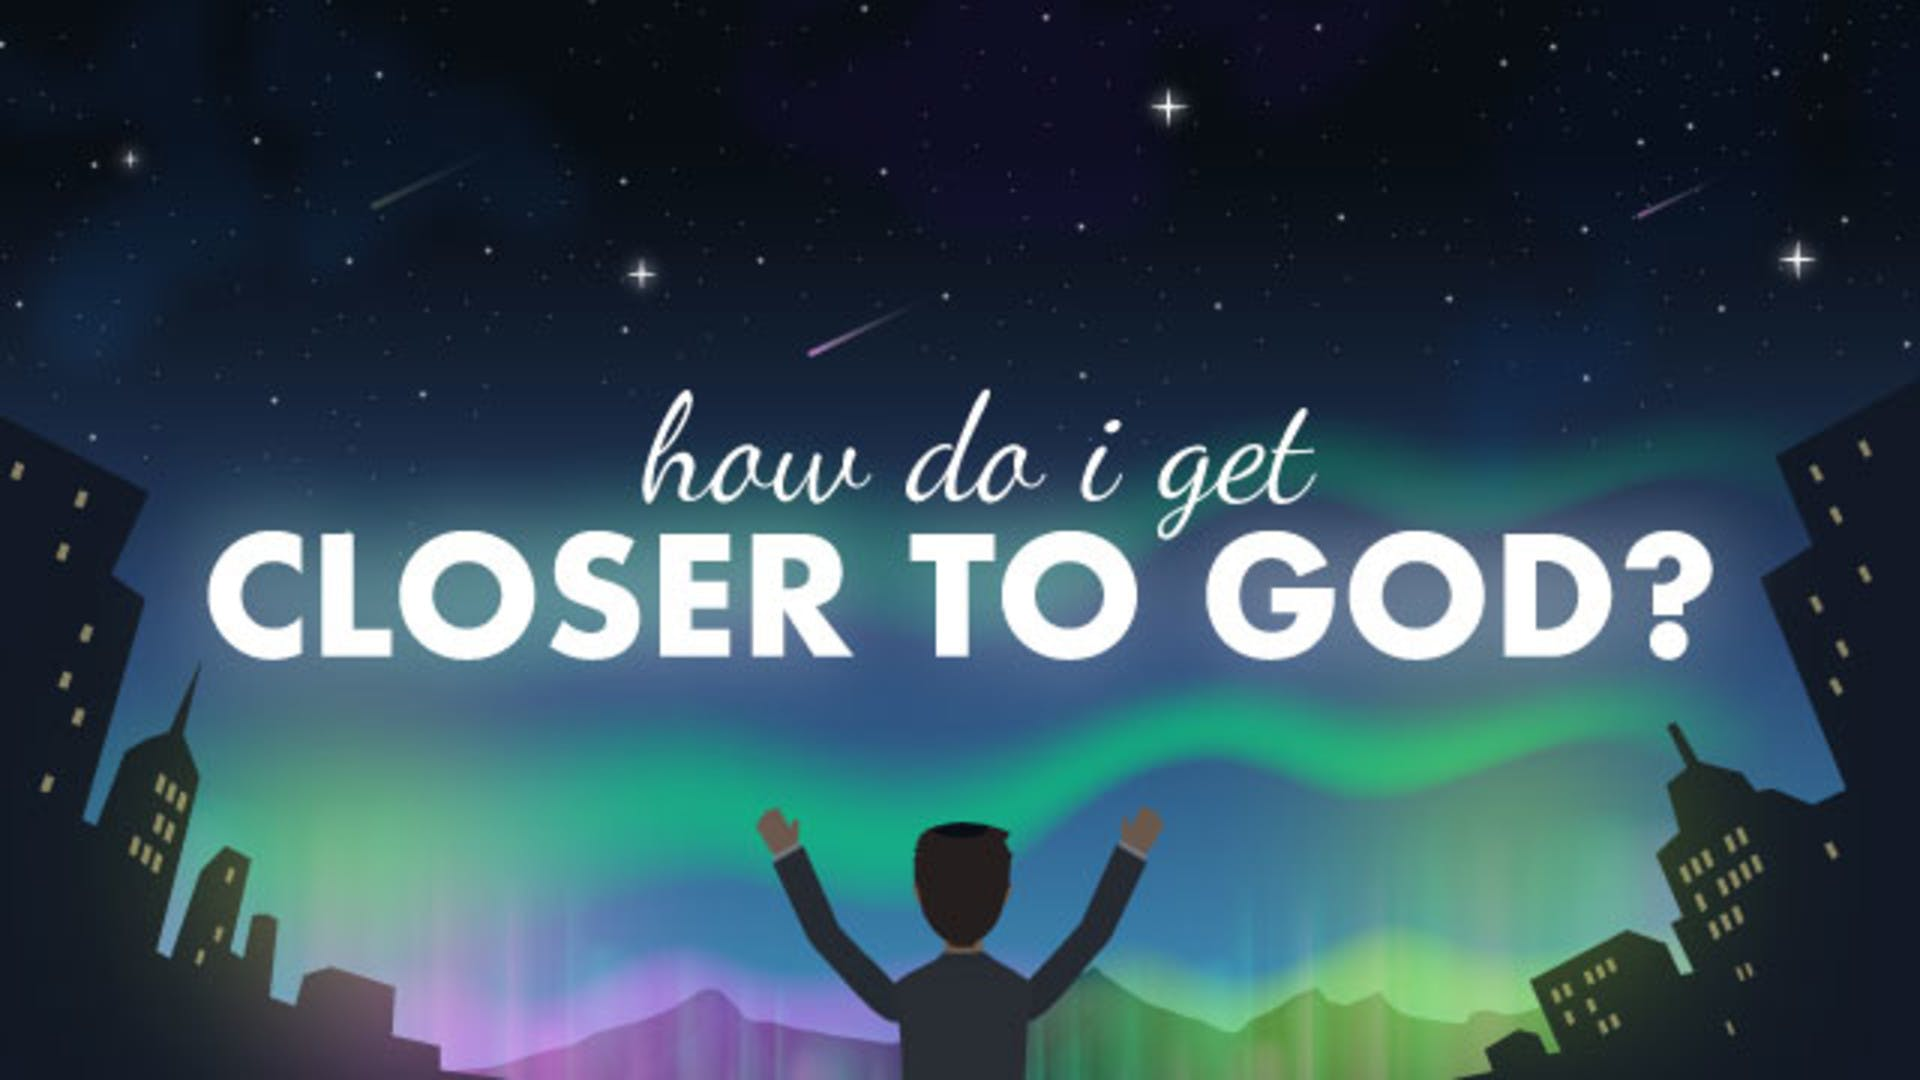 How to get closer to God prayer